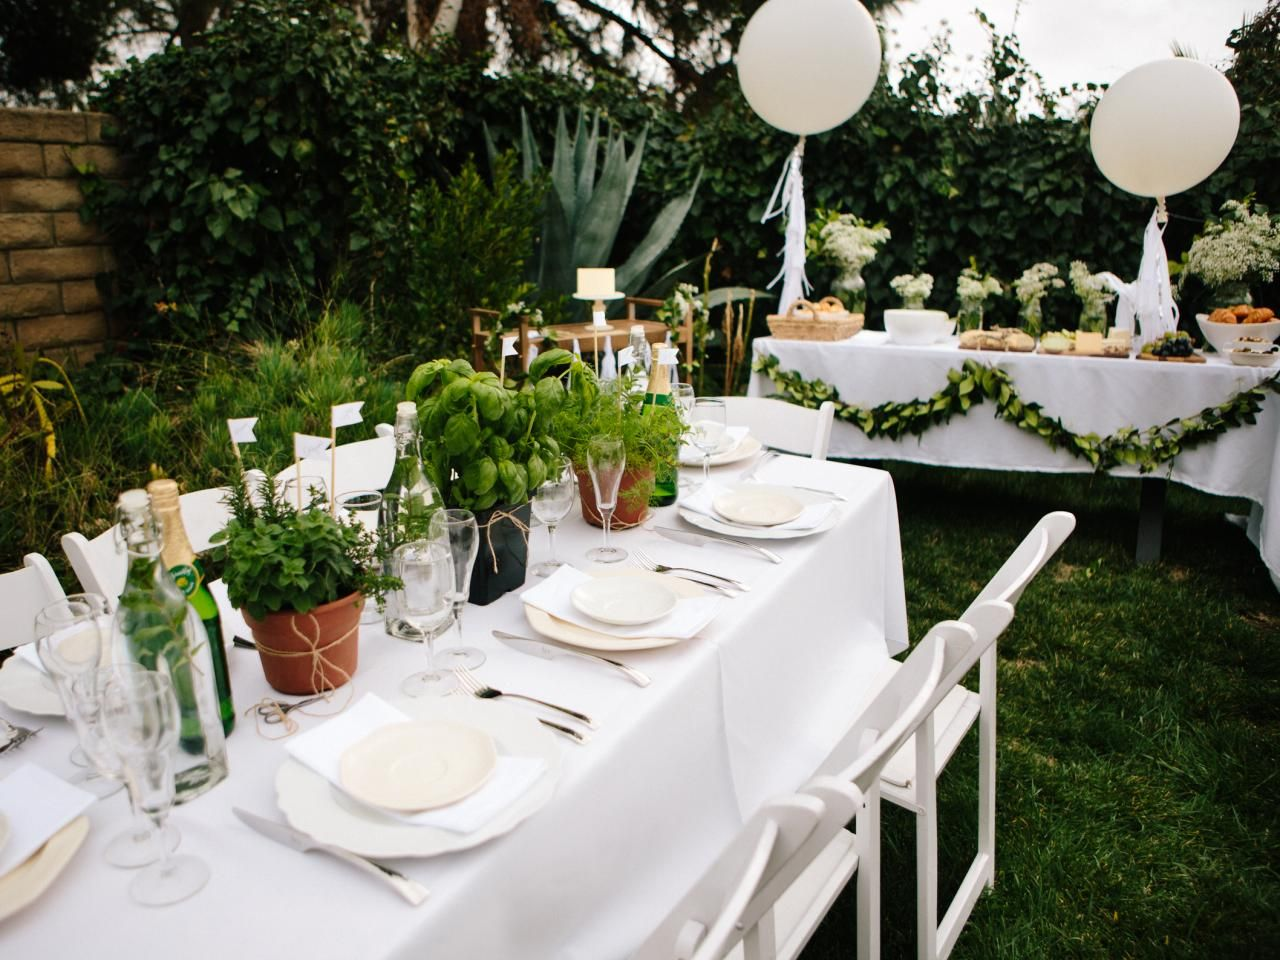 French Decorating Ideas For A Party - French inspired all white baby shower